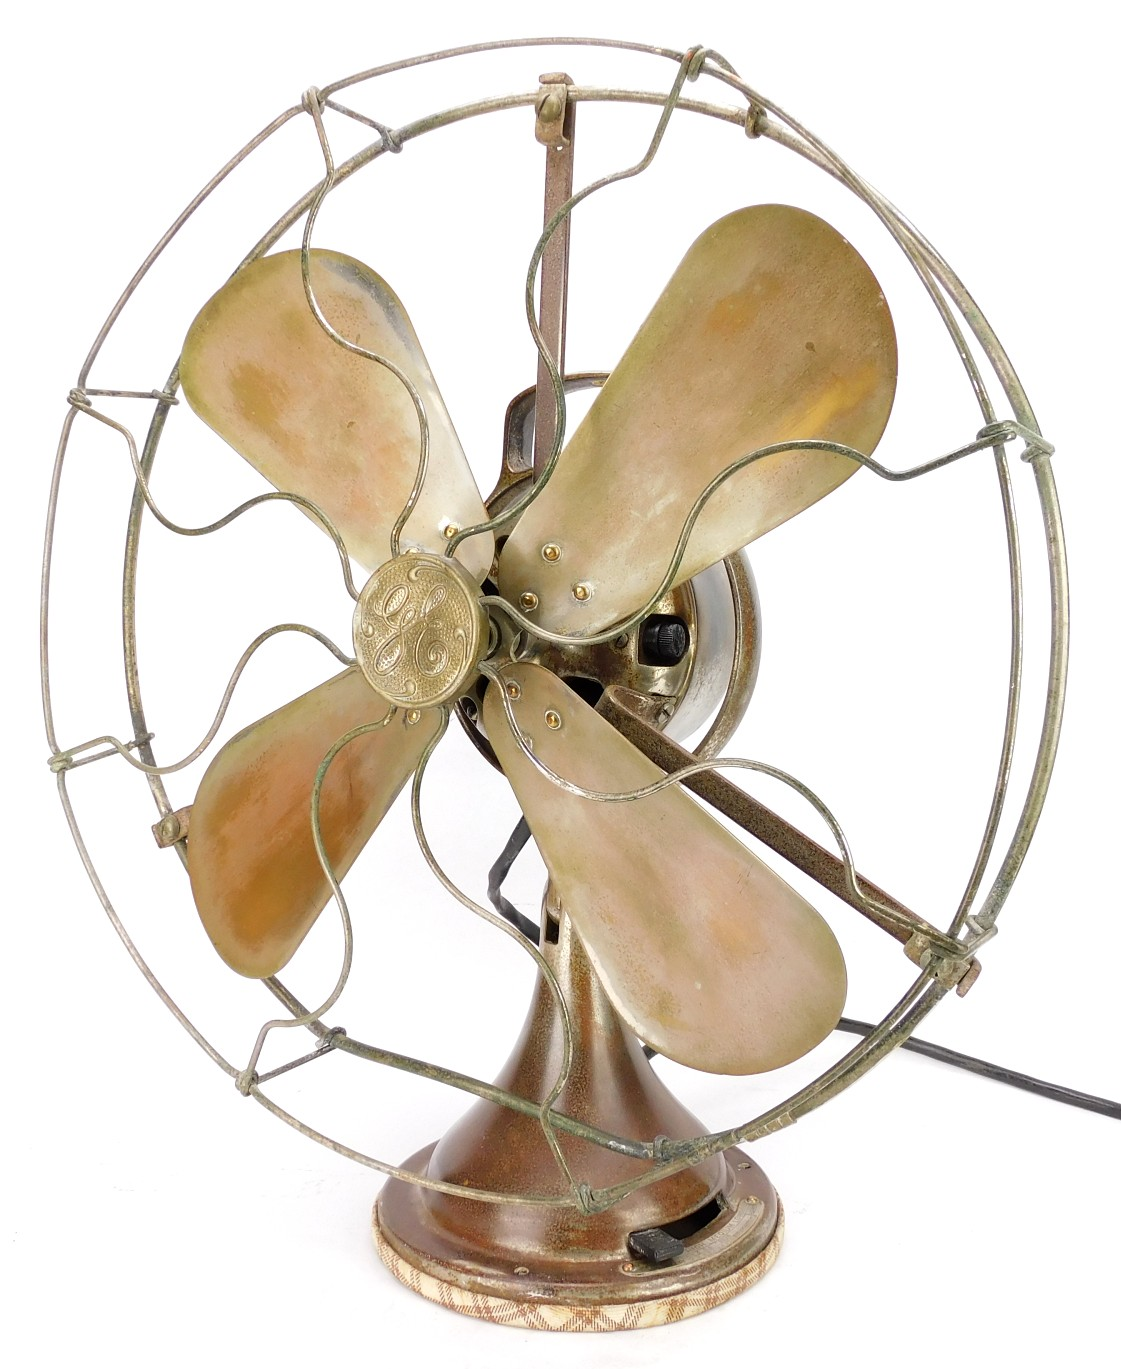 "Circa 1923 16"" GE Brass Bell Original Nickel Plated Oscillating Desk Fan Rare DC Example"